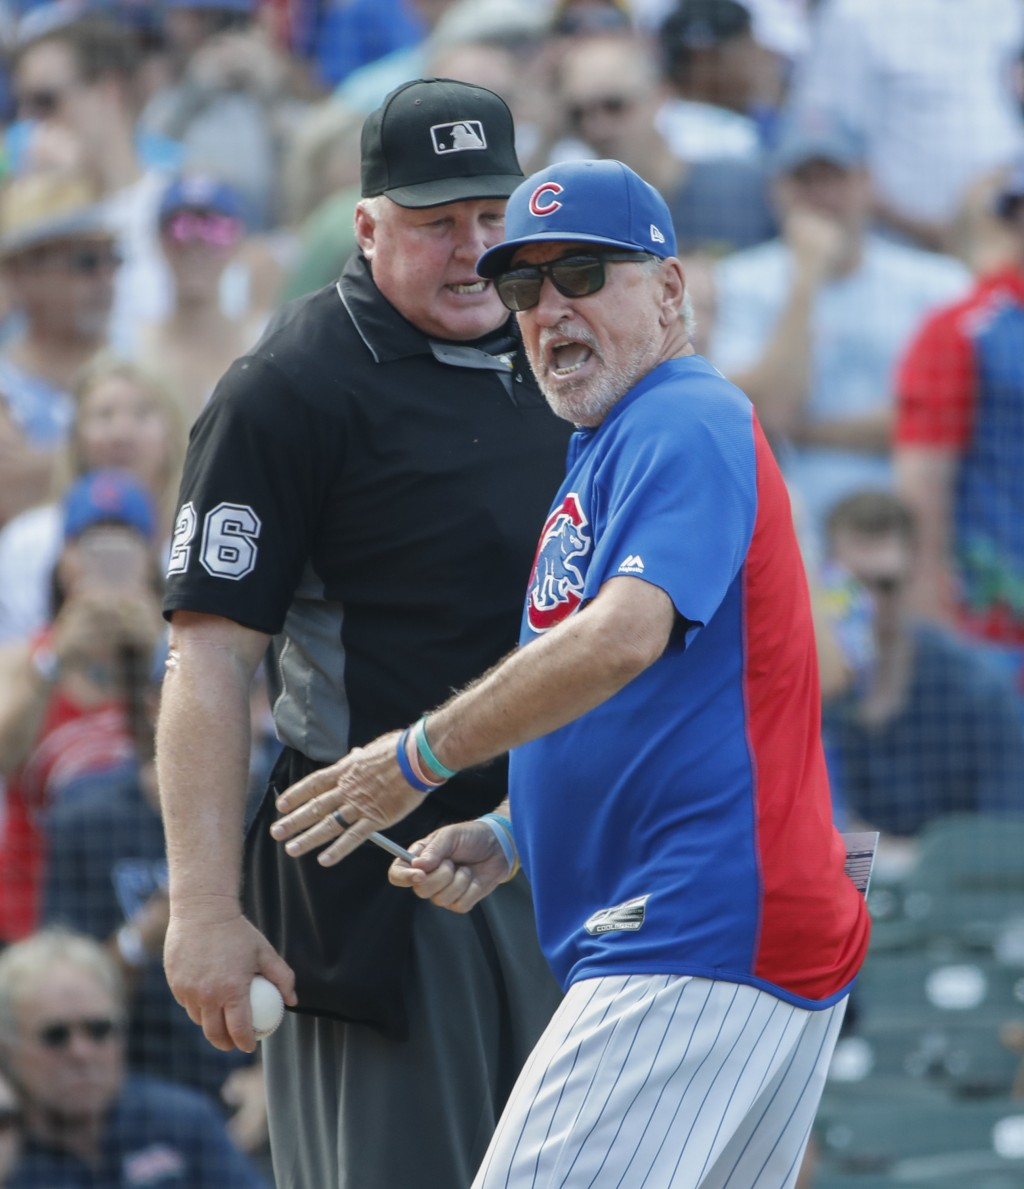 Chicago Cubs manager Joe Maddon, right, argues a call against his team with umpire Bill Miller, left, as he is ejected from a baseball game against th